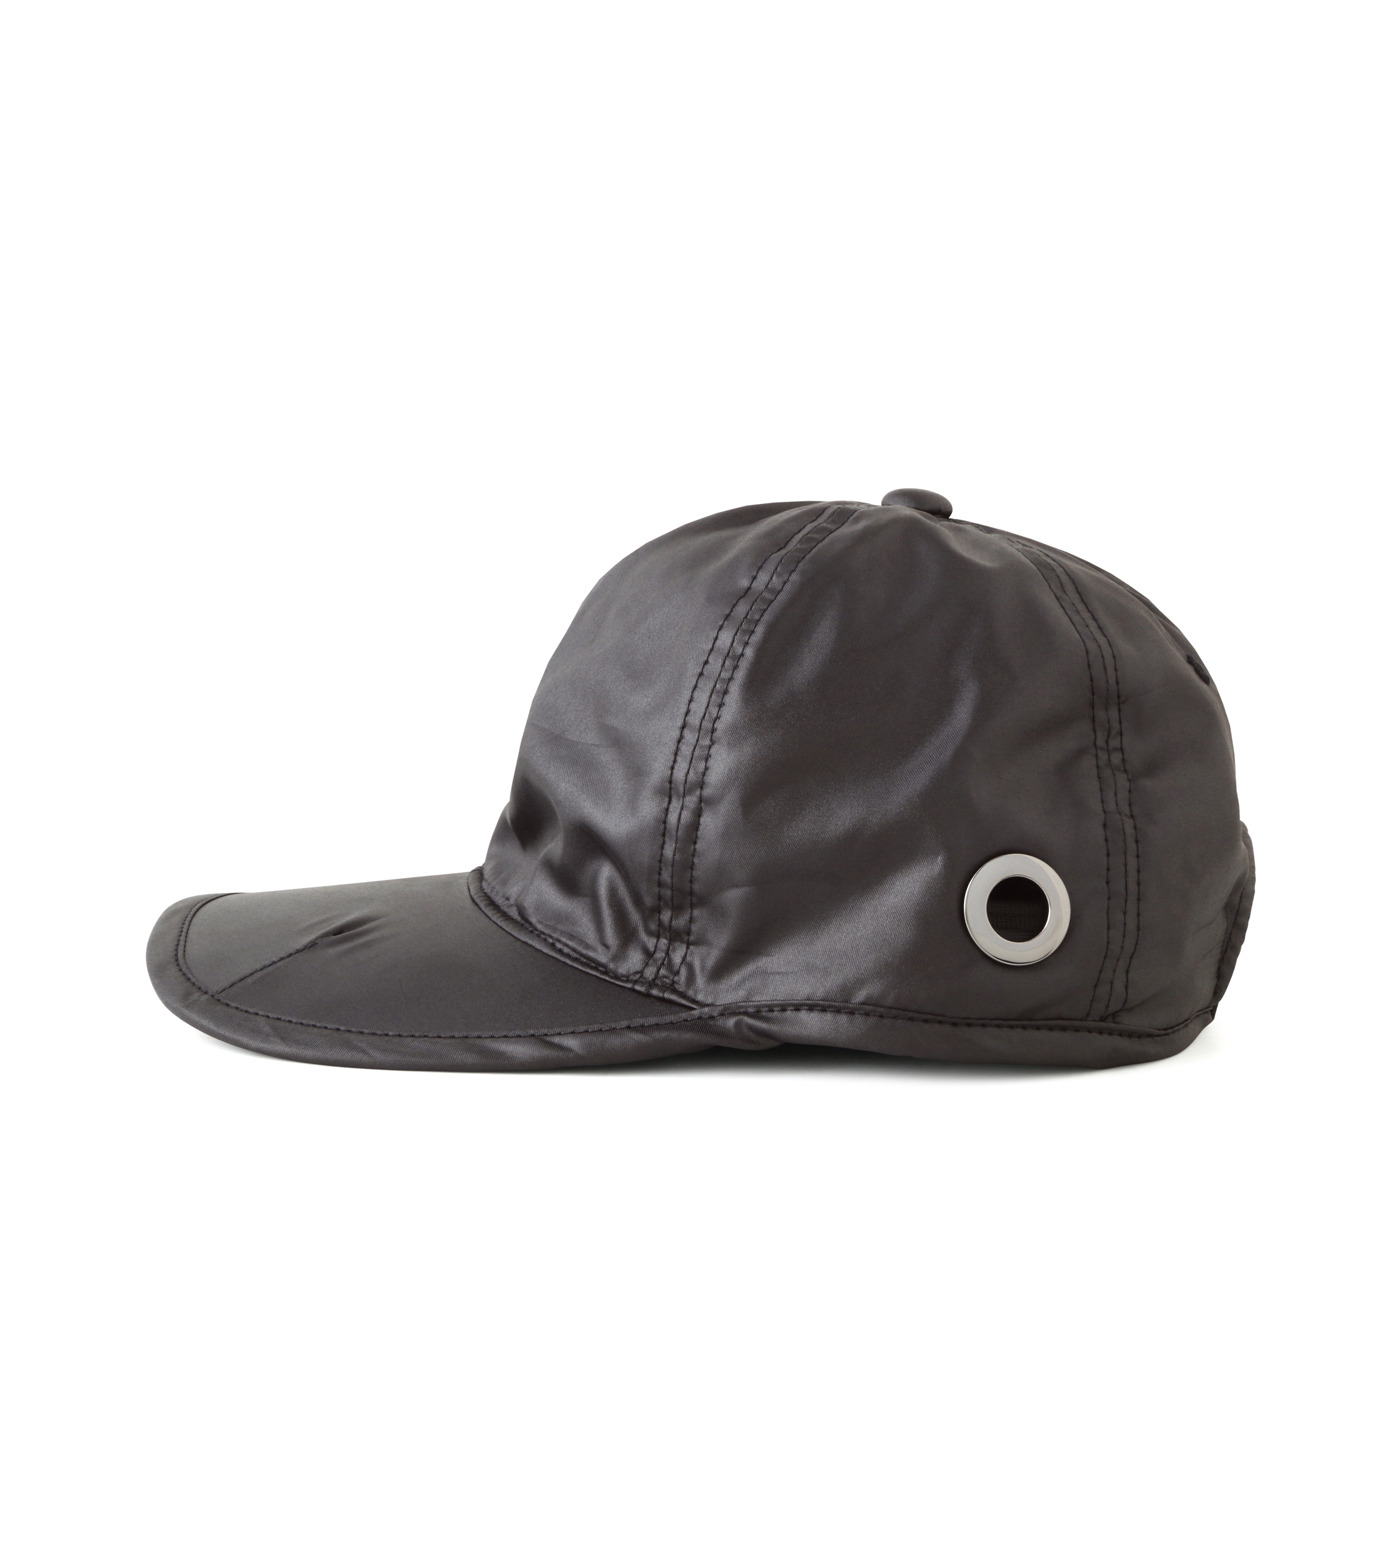 HEY YOU !(ヘイユウ)のWASHED TWILL CAP-BLACK(HATS/HATS)-18S90023-13 拡大詳細画像2